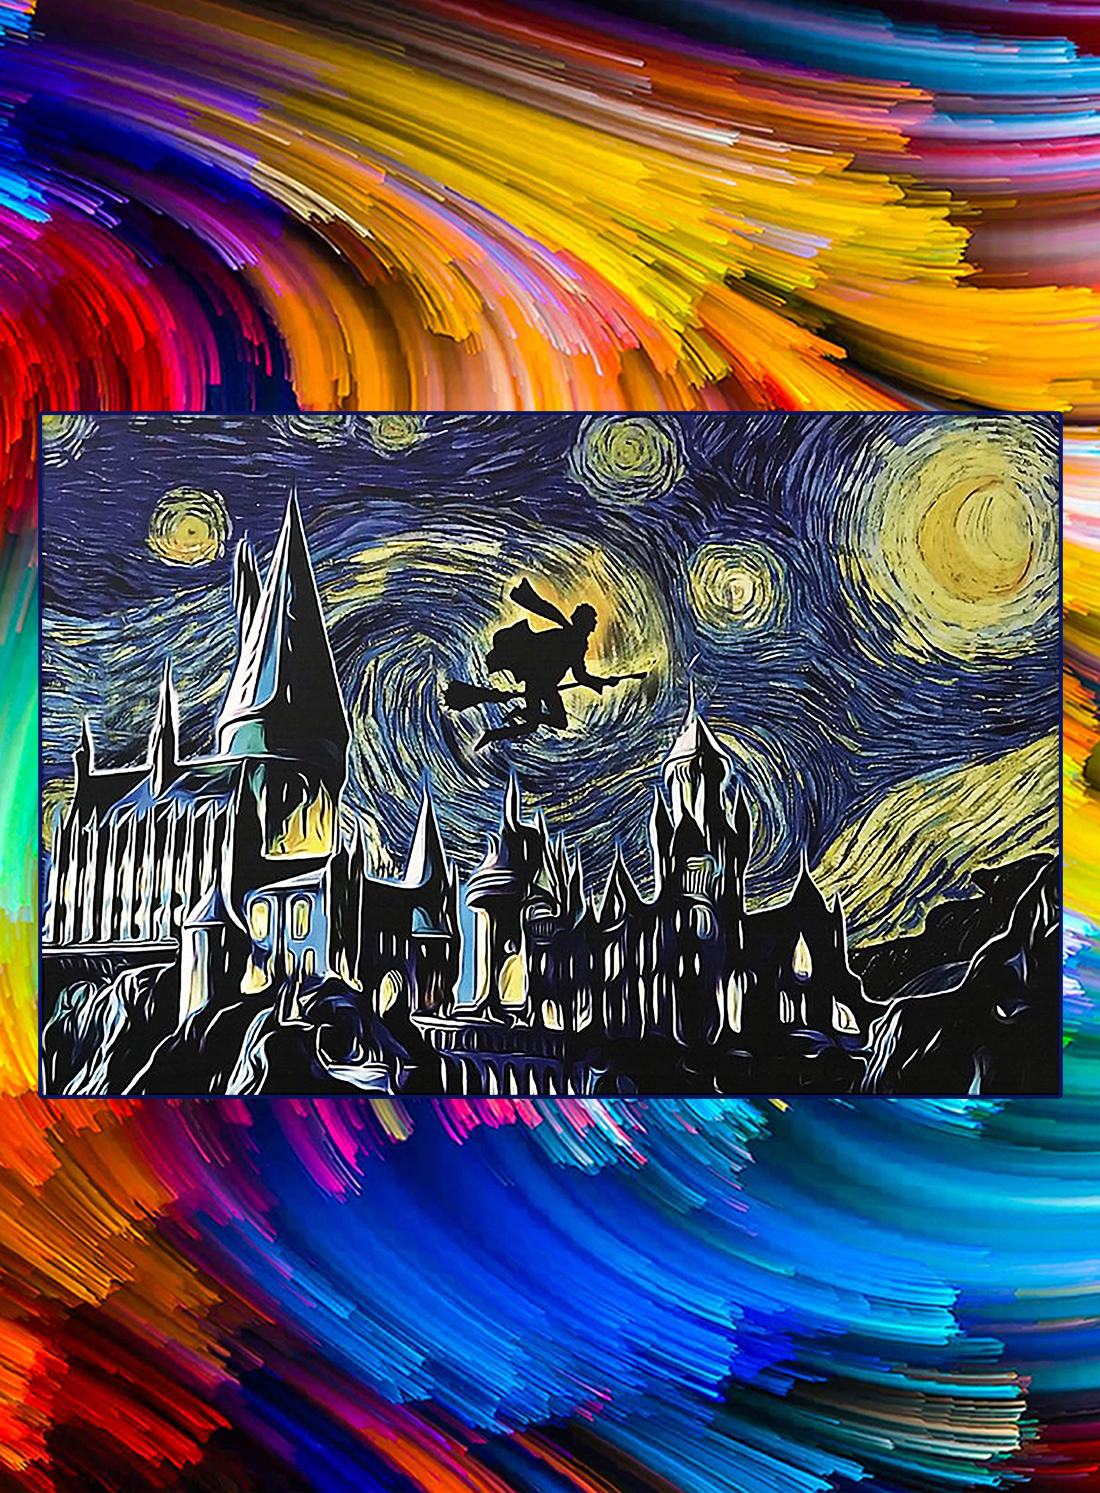 Hogwarts harry potter flying starry night poster - A4